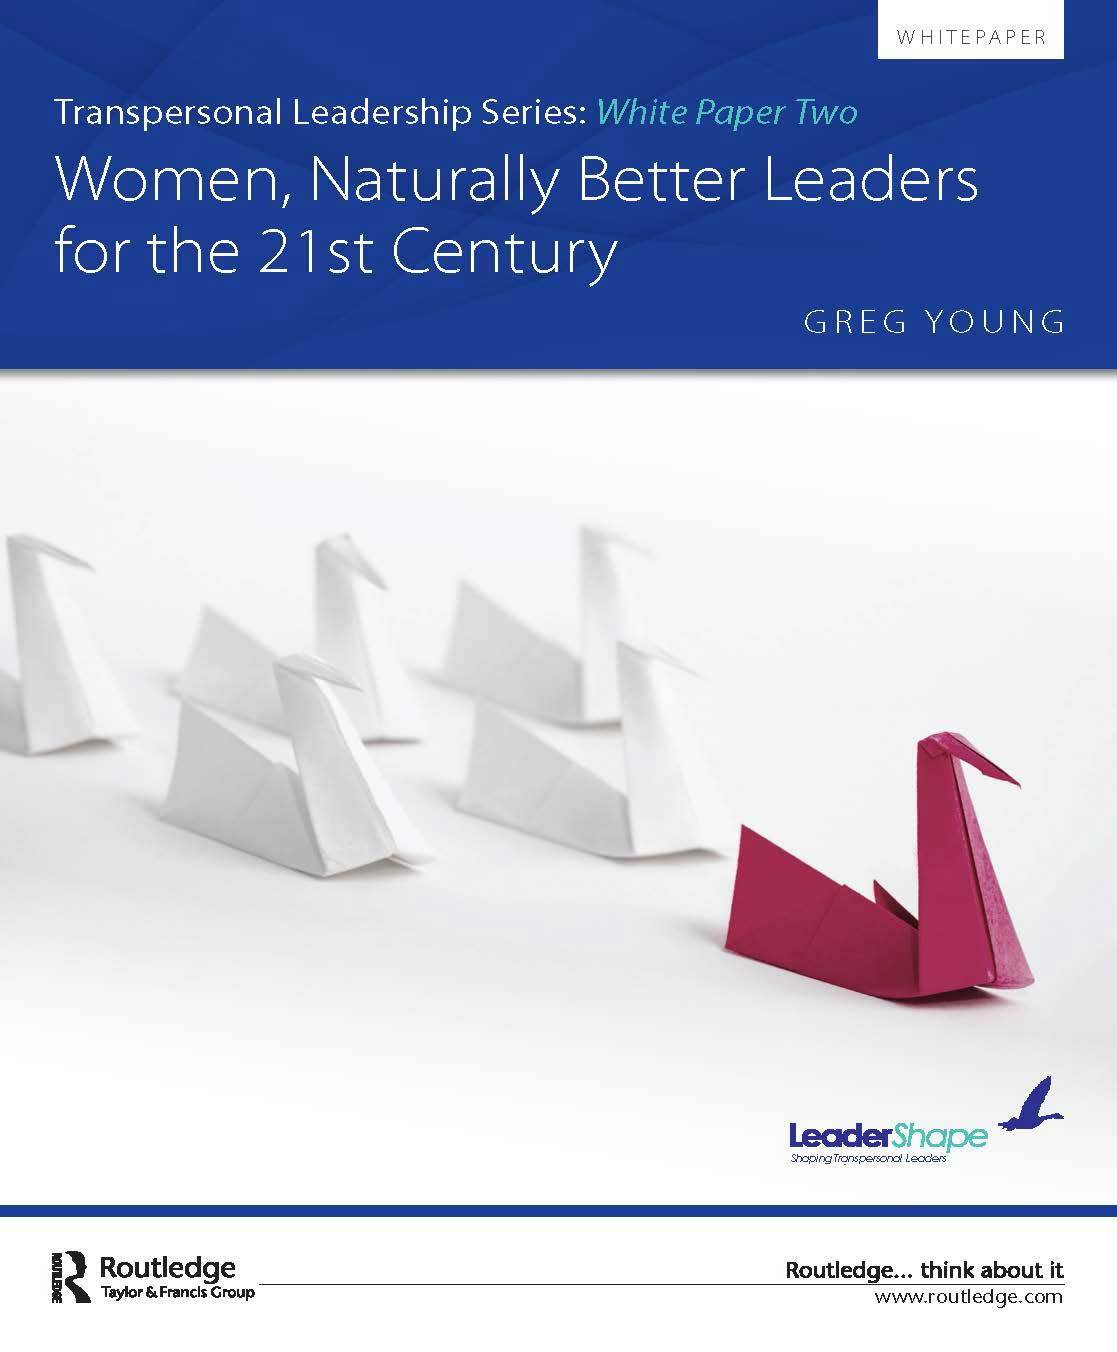 The Transpersonal Leadership White Paper Series - Women, Naturally Better Leaders for the 21st Century